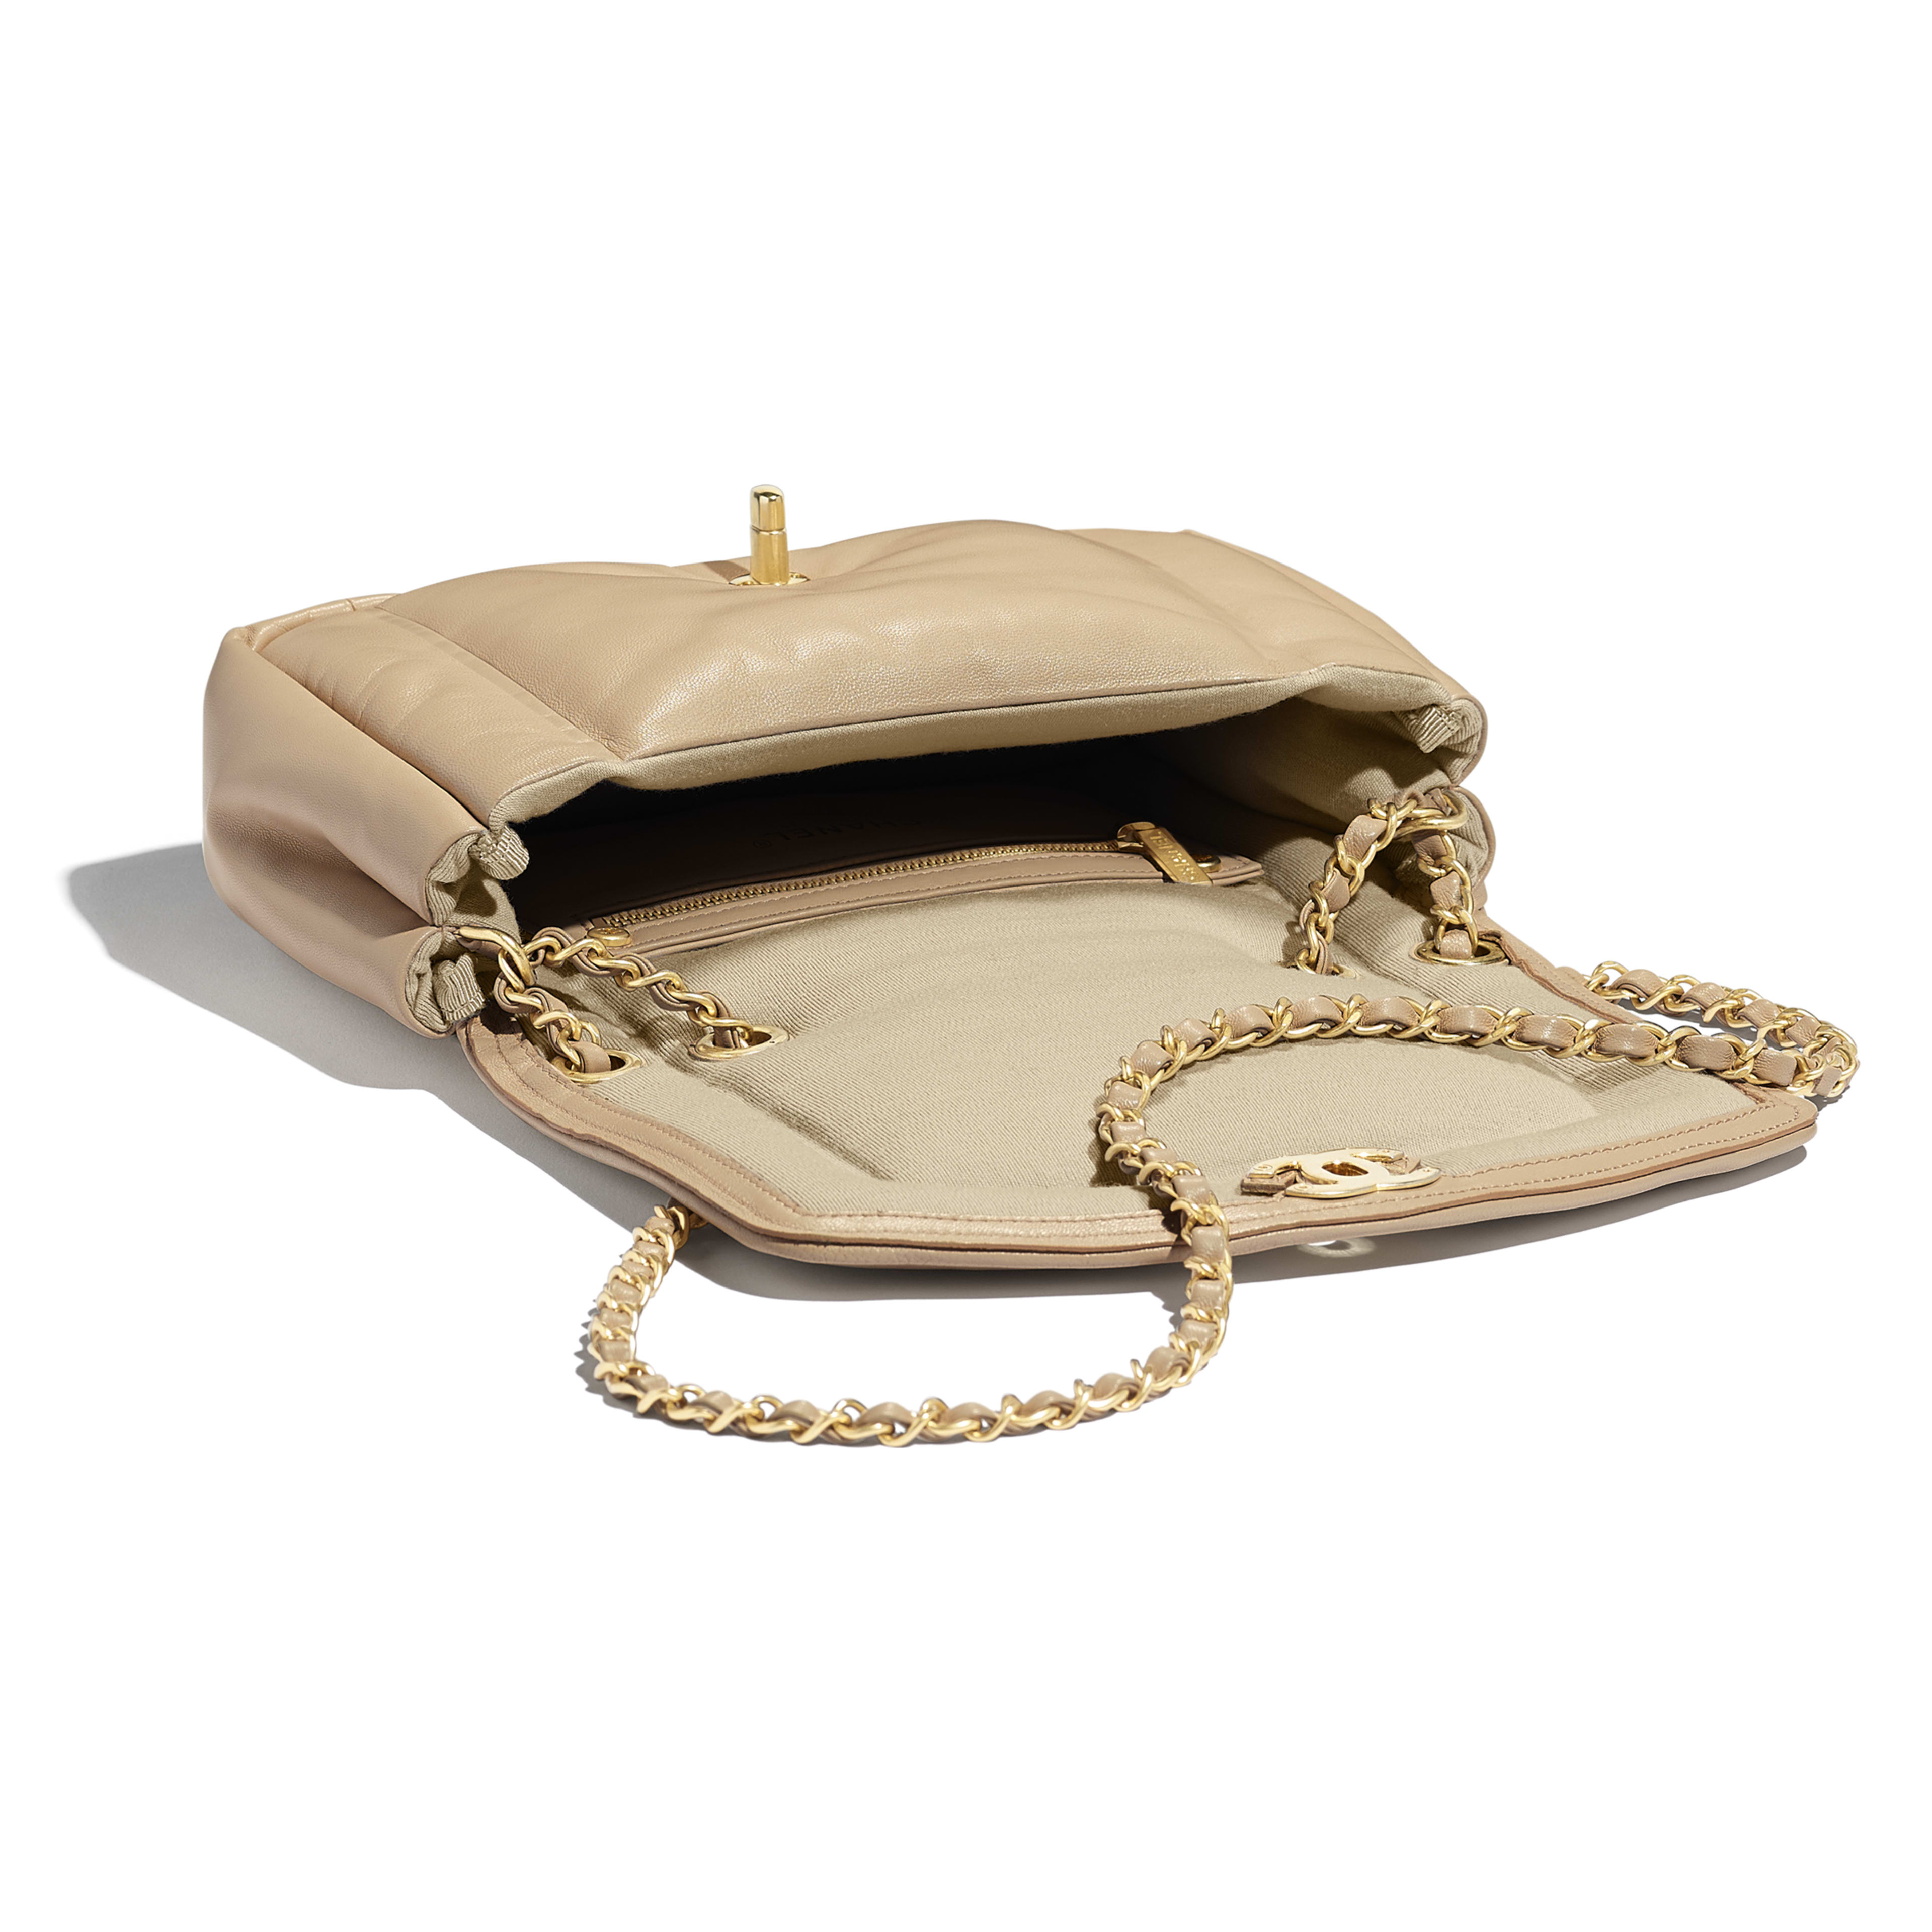 Flap Bag - Beige - Lambskin & Gold-Tone Metal - Other view - see full sized version